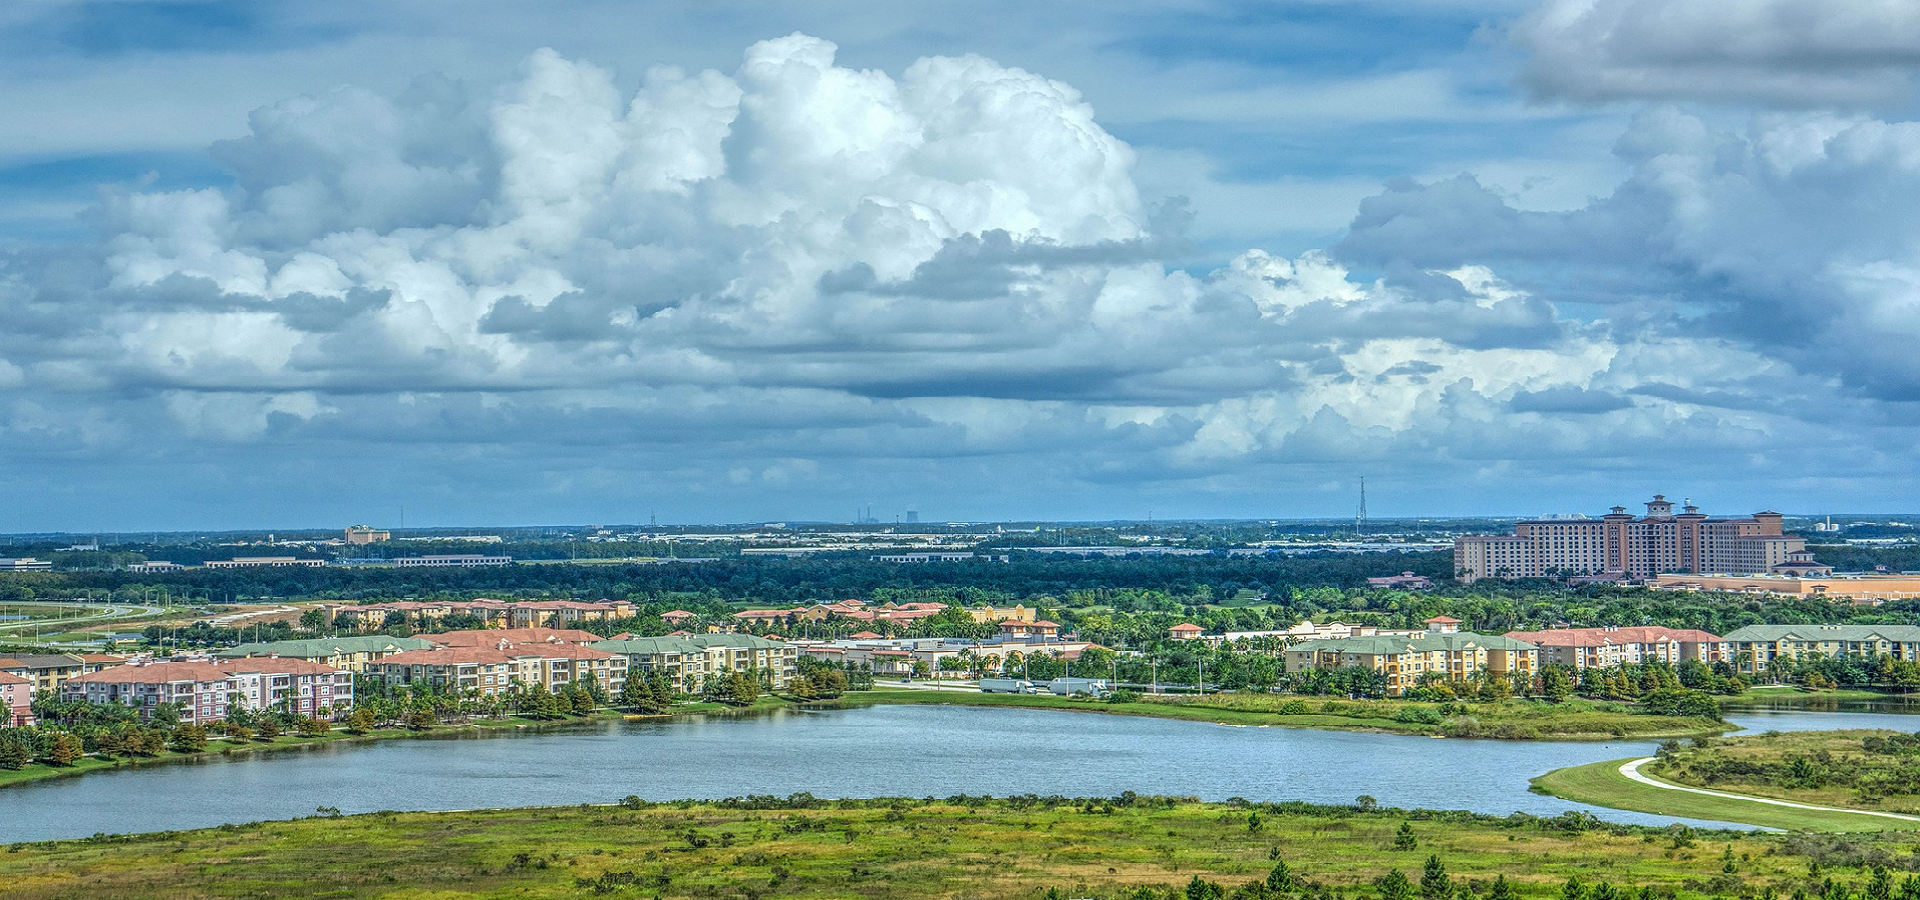 Best Things to Do in Orlando on Weekends